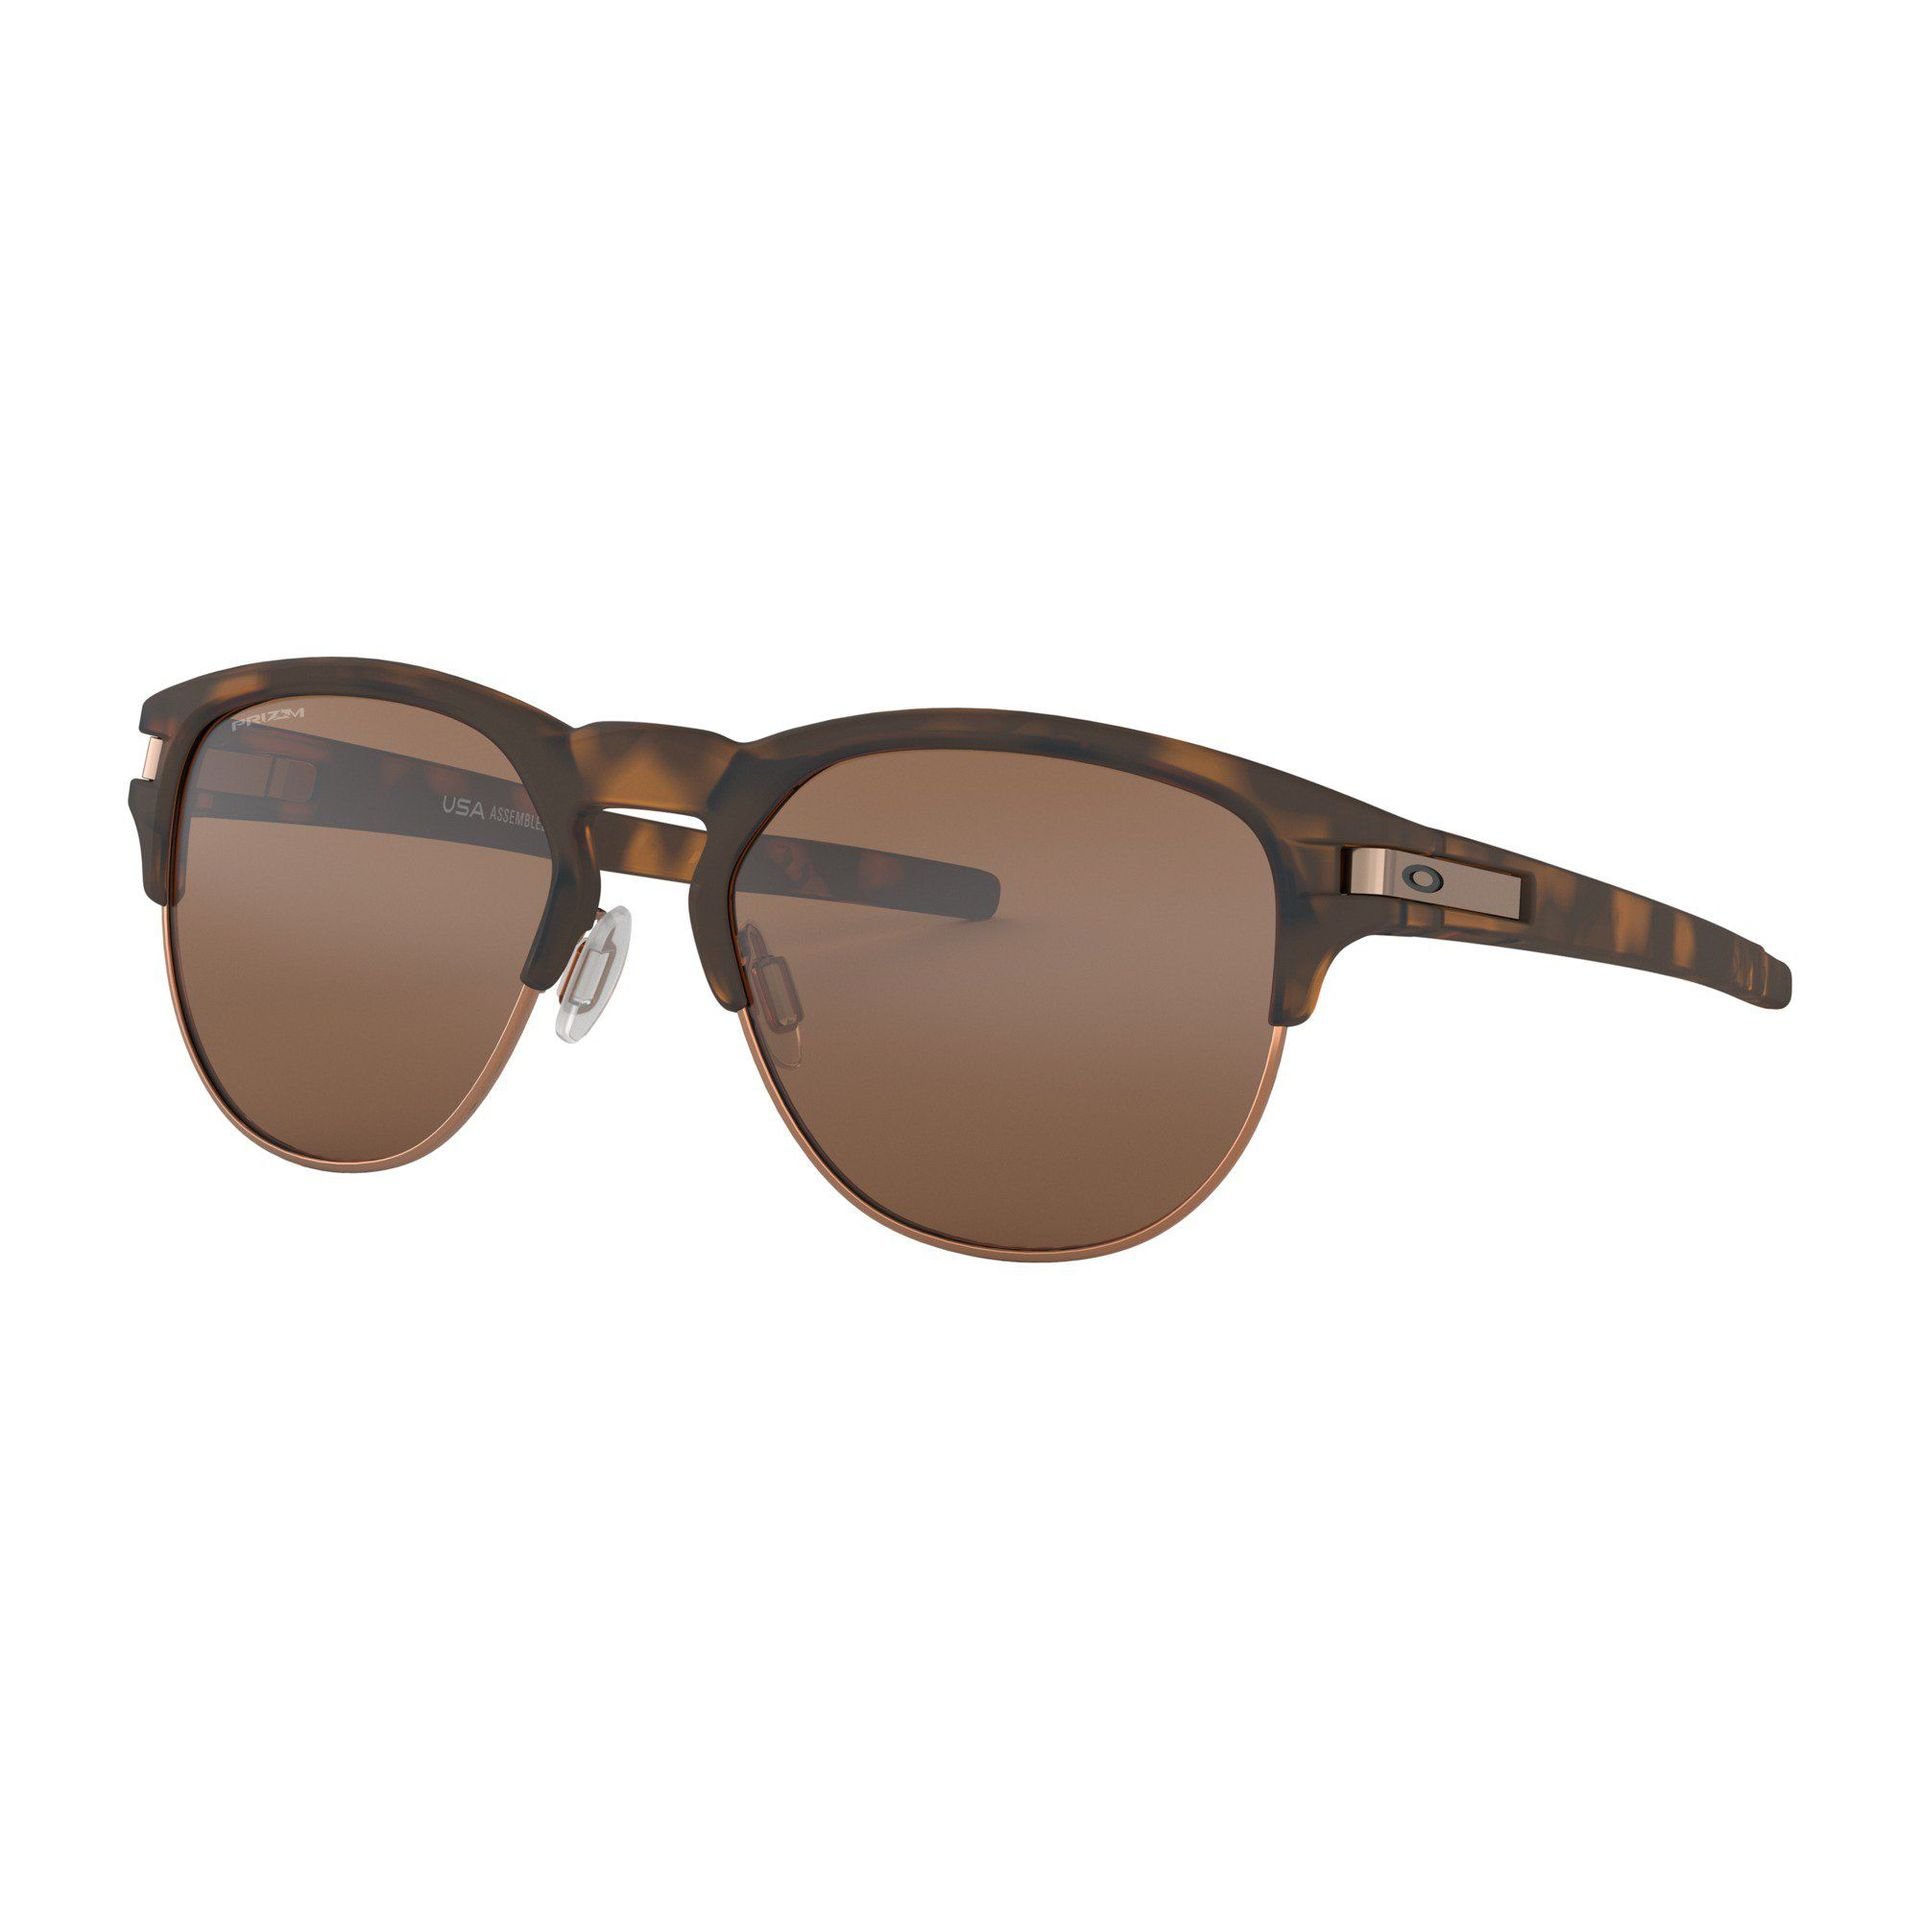 OKULARY OAKLEY LATCH KEY L MATTE BROWN TORTOISE|PRIZM TUNGSTEN